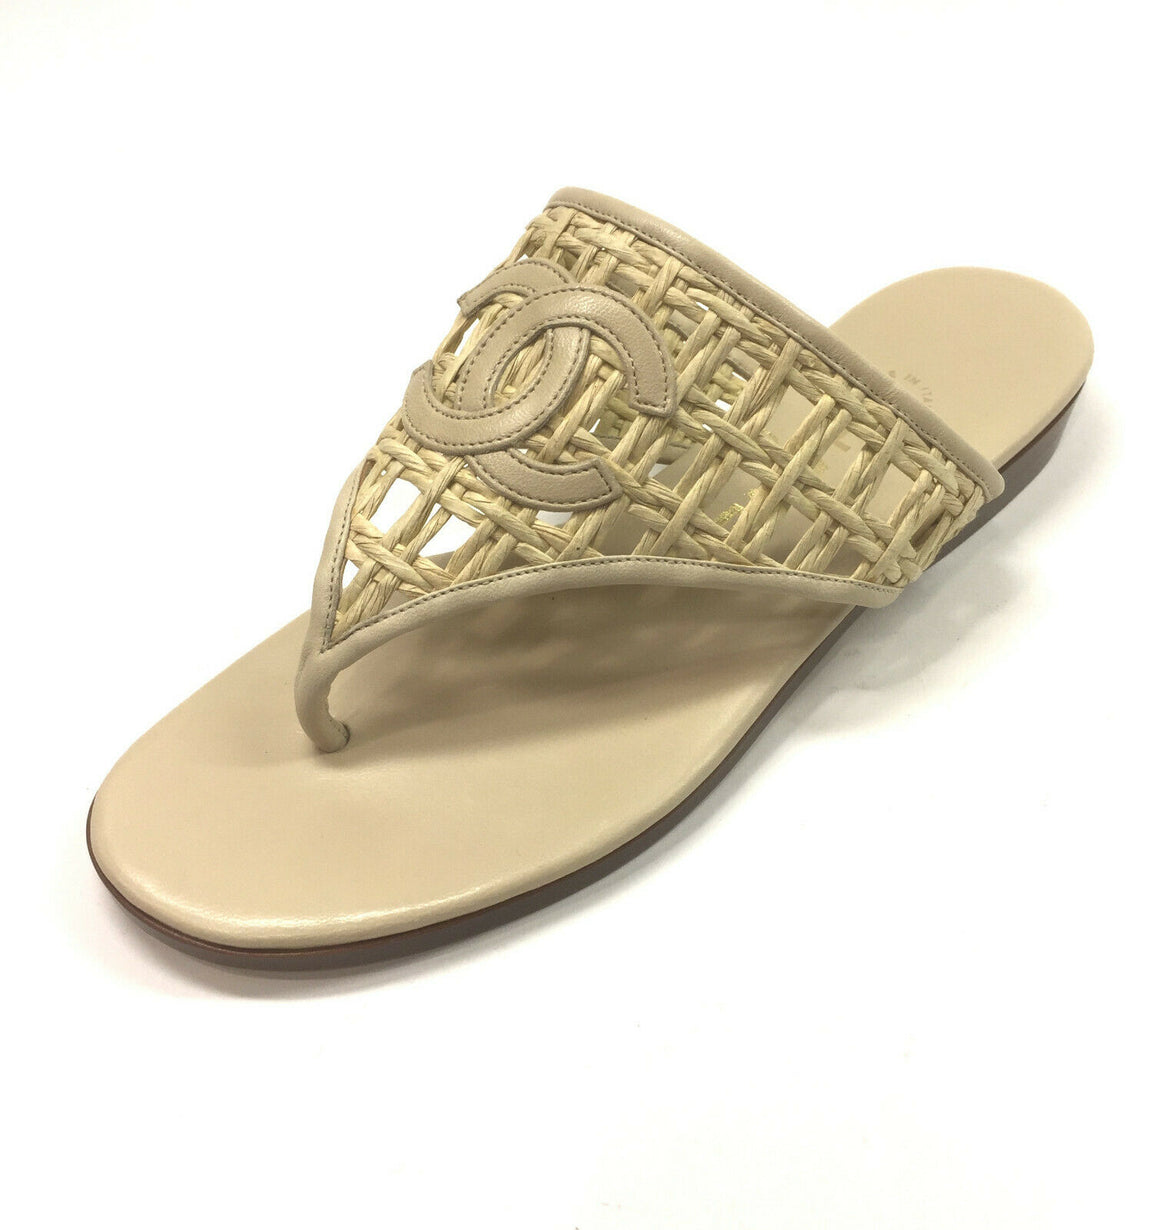 CHANEL Beige Basketweave Cord Leather CC Flat Thong Sandals Size: EU 37 / US7